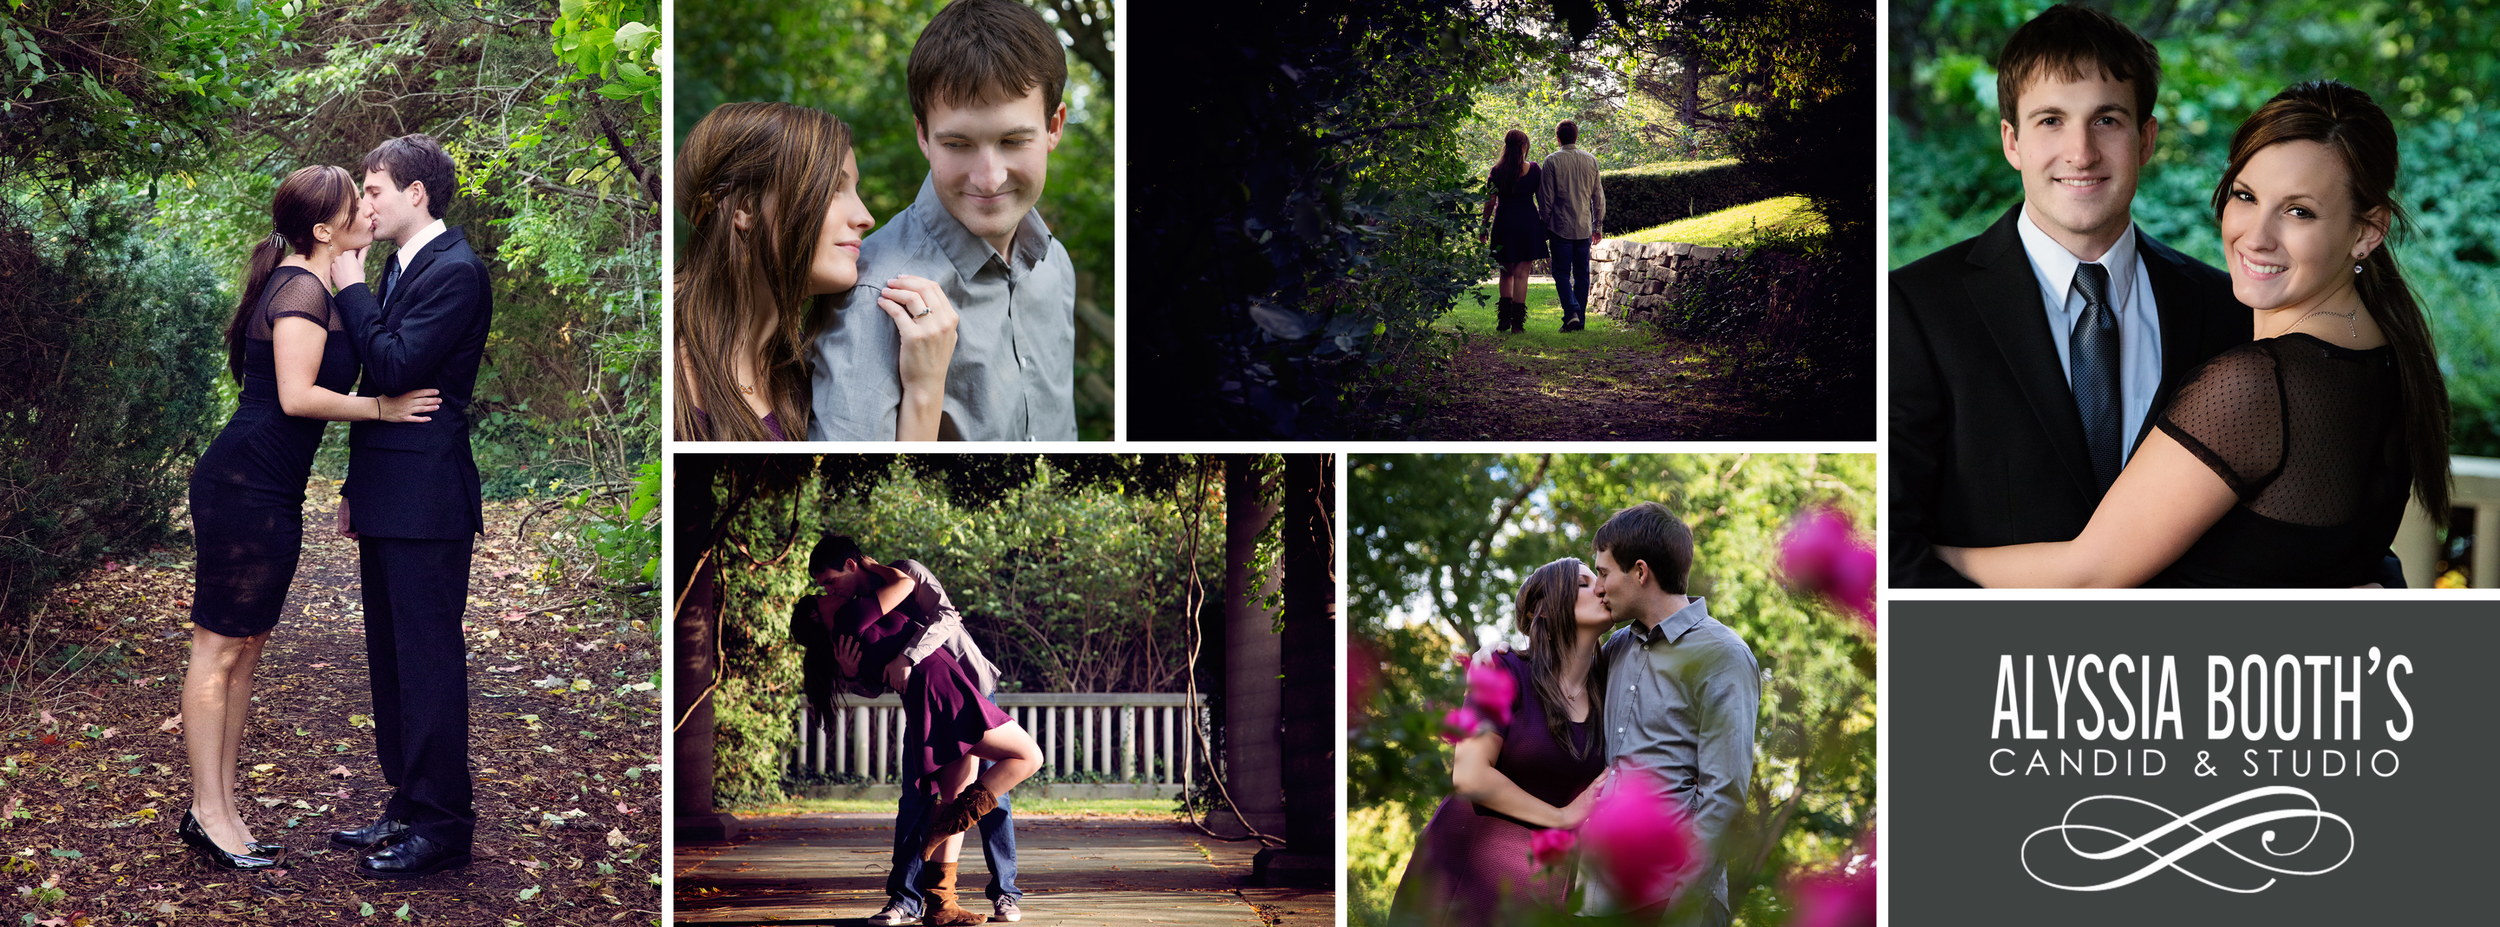 Lauren + Paul Engagement Photo Shoot Preview Blog